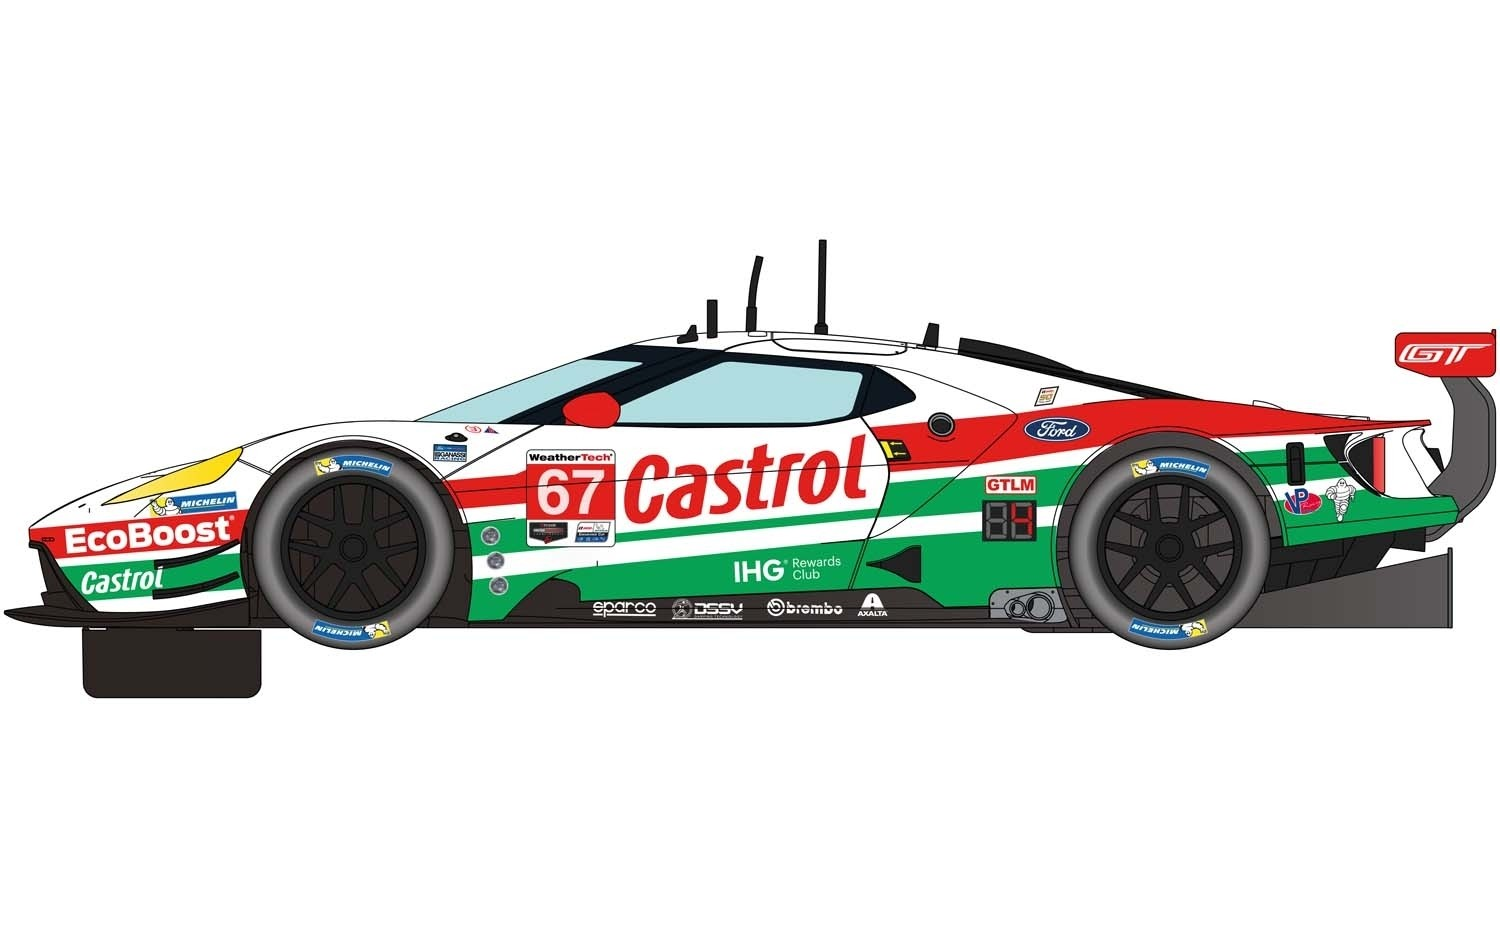 C4151 Scalextric Ford GT GTE, Daytona 2019, No.67